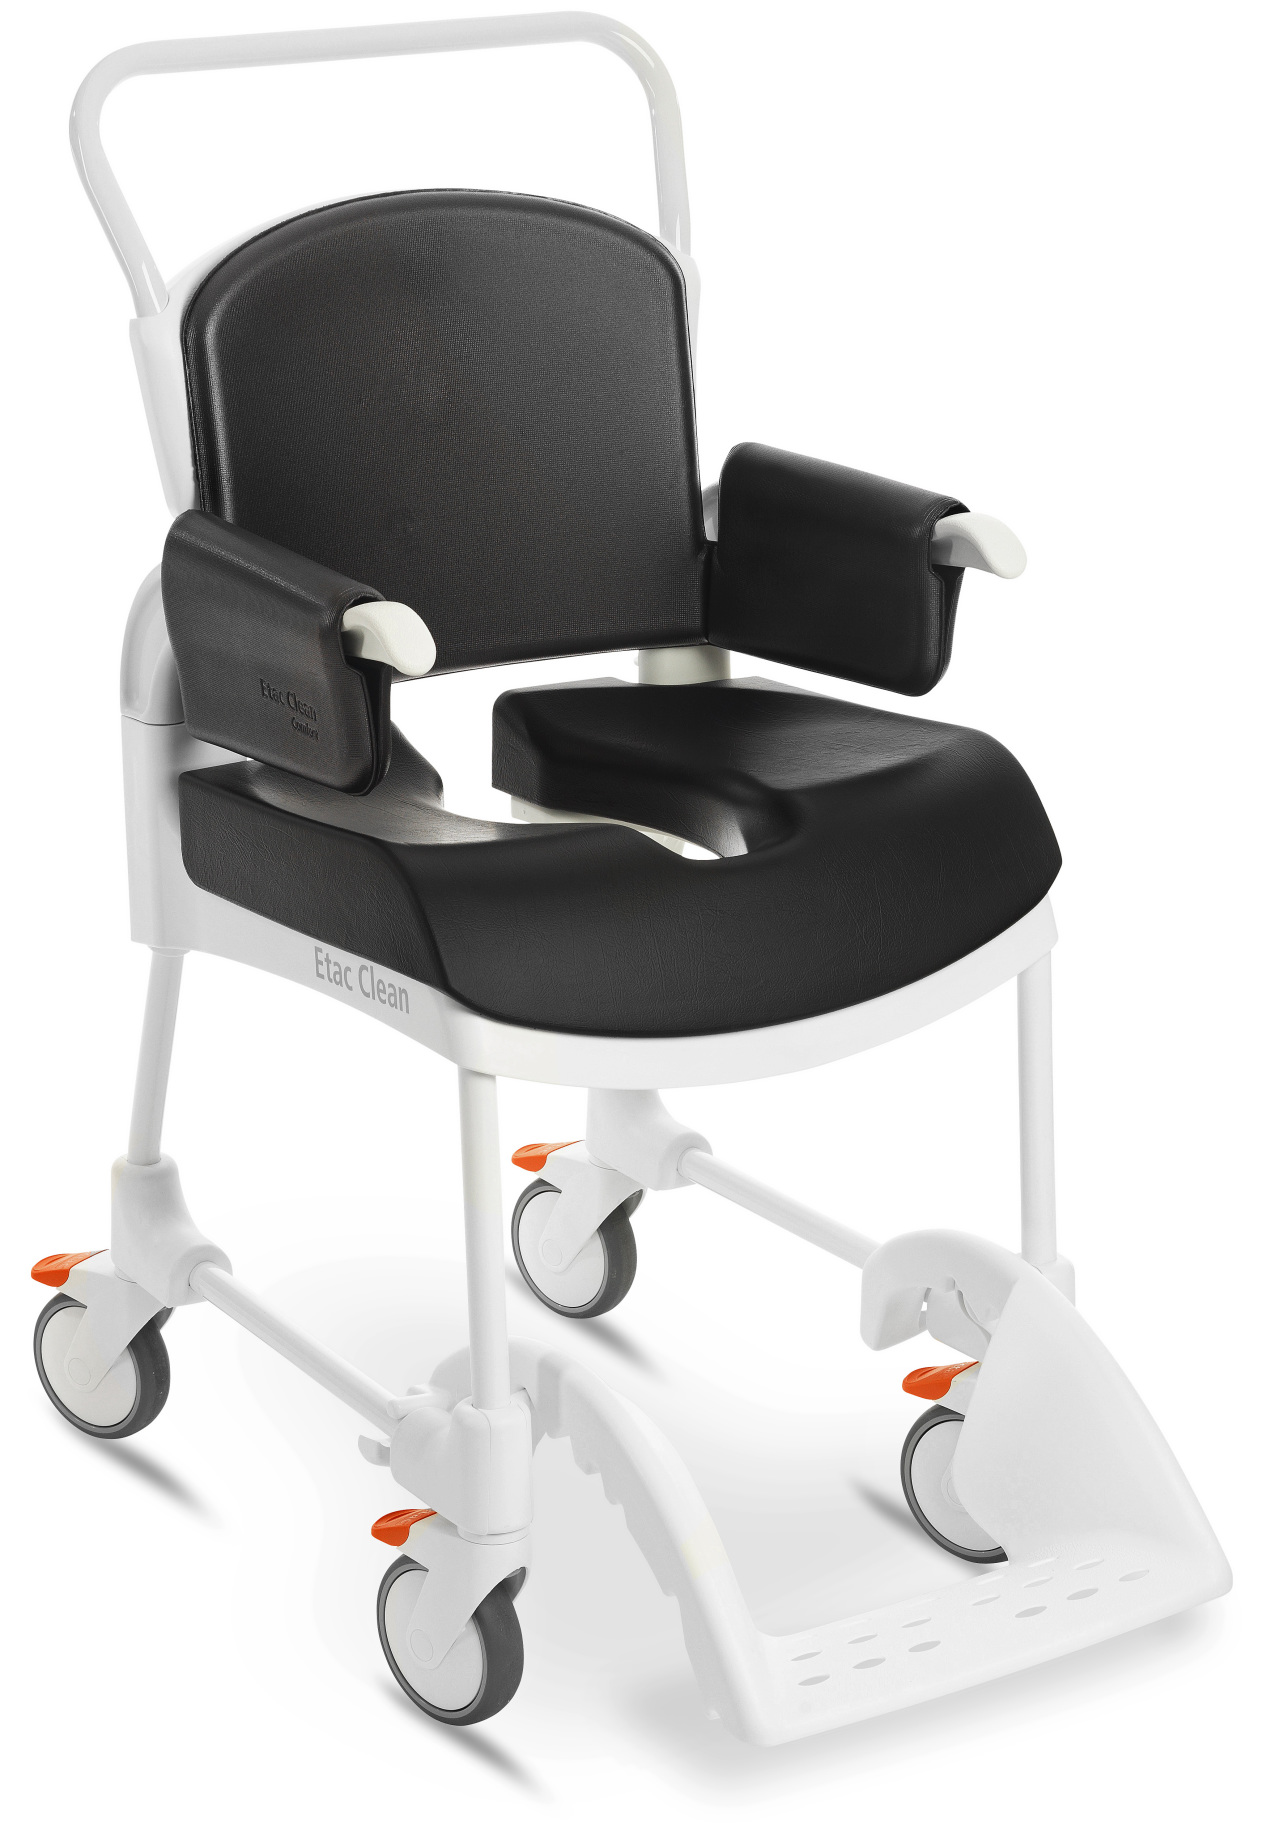 Austech Medical Bathroom Commodes K Care Mobile Commode